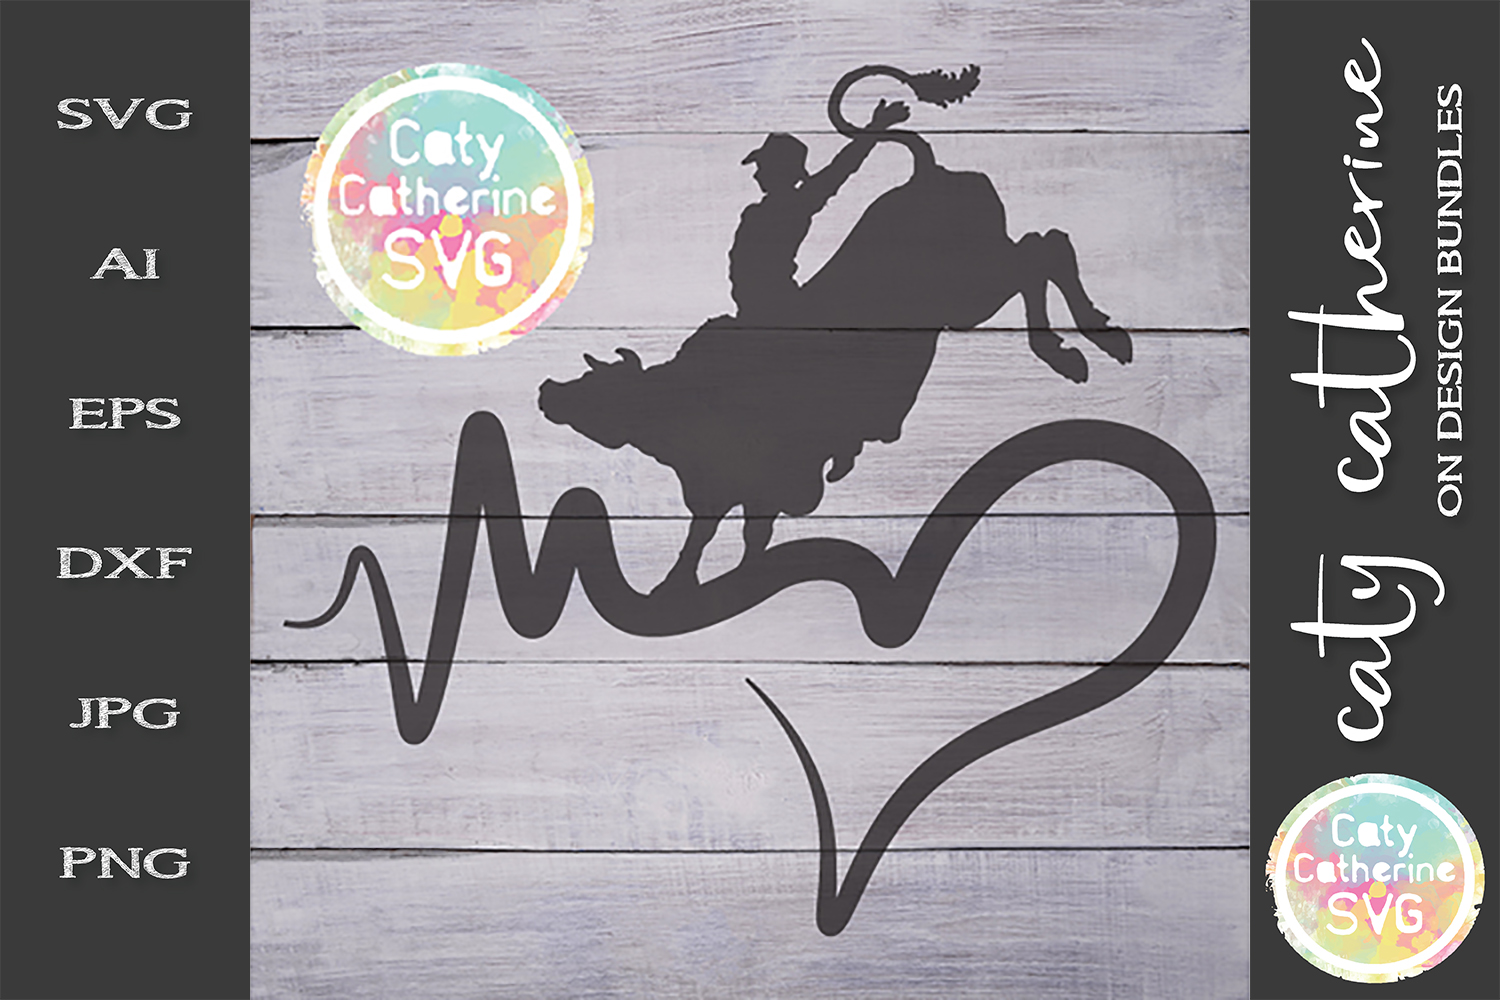 Heartbeat Love Heart Rodeo Bull Riding SVG Cut File example image 1